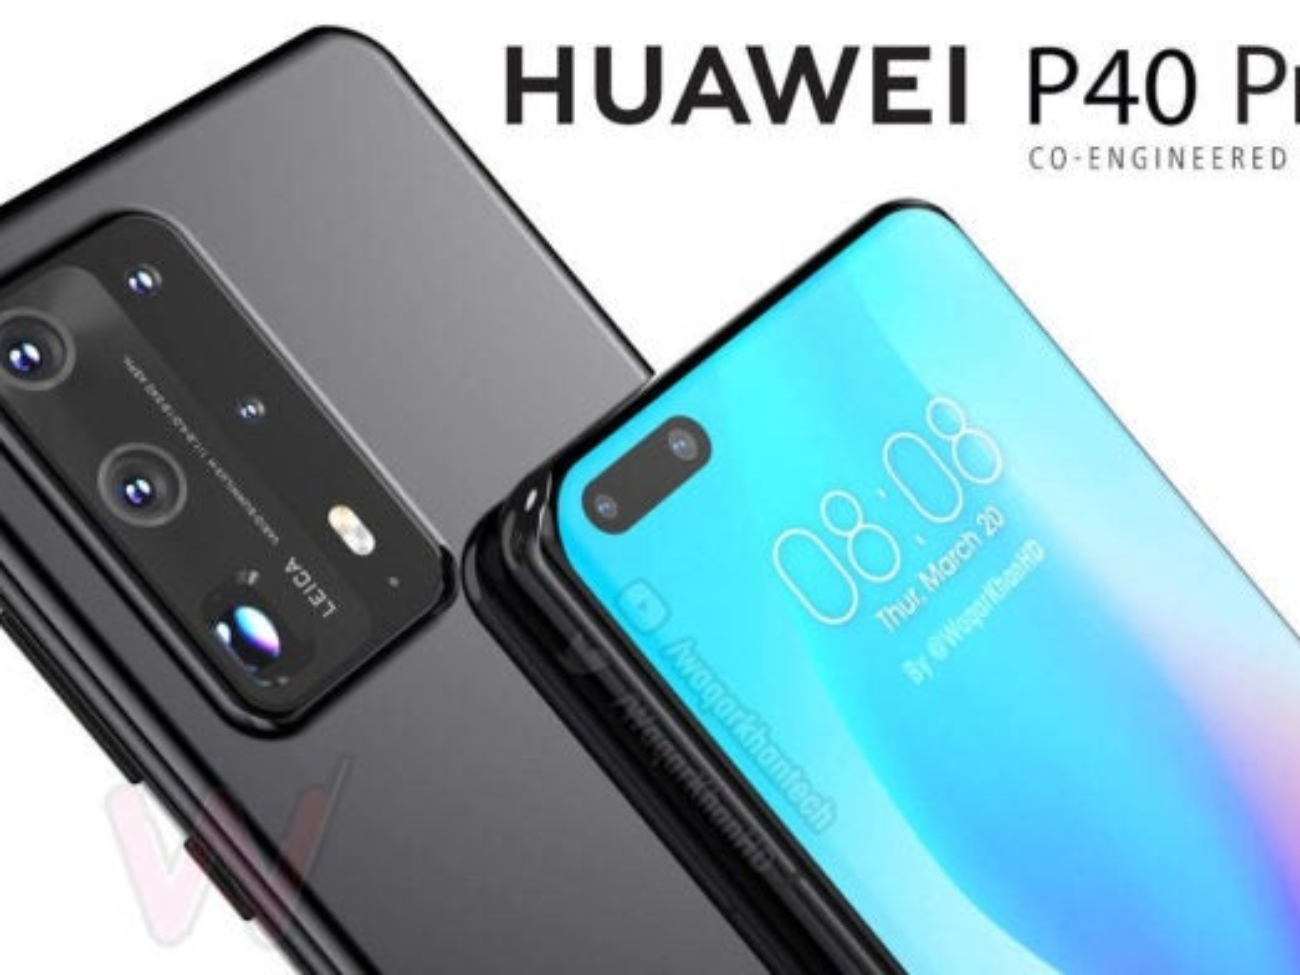 Huawei-p40-pro-video-render-696x392-1